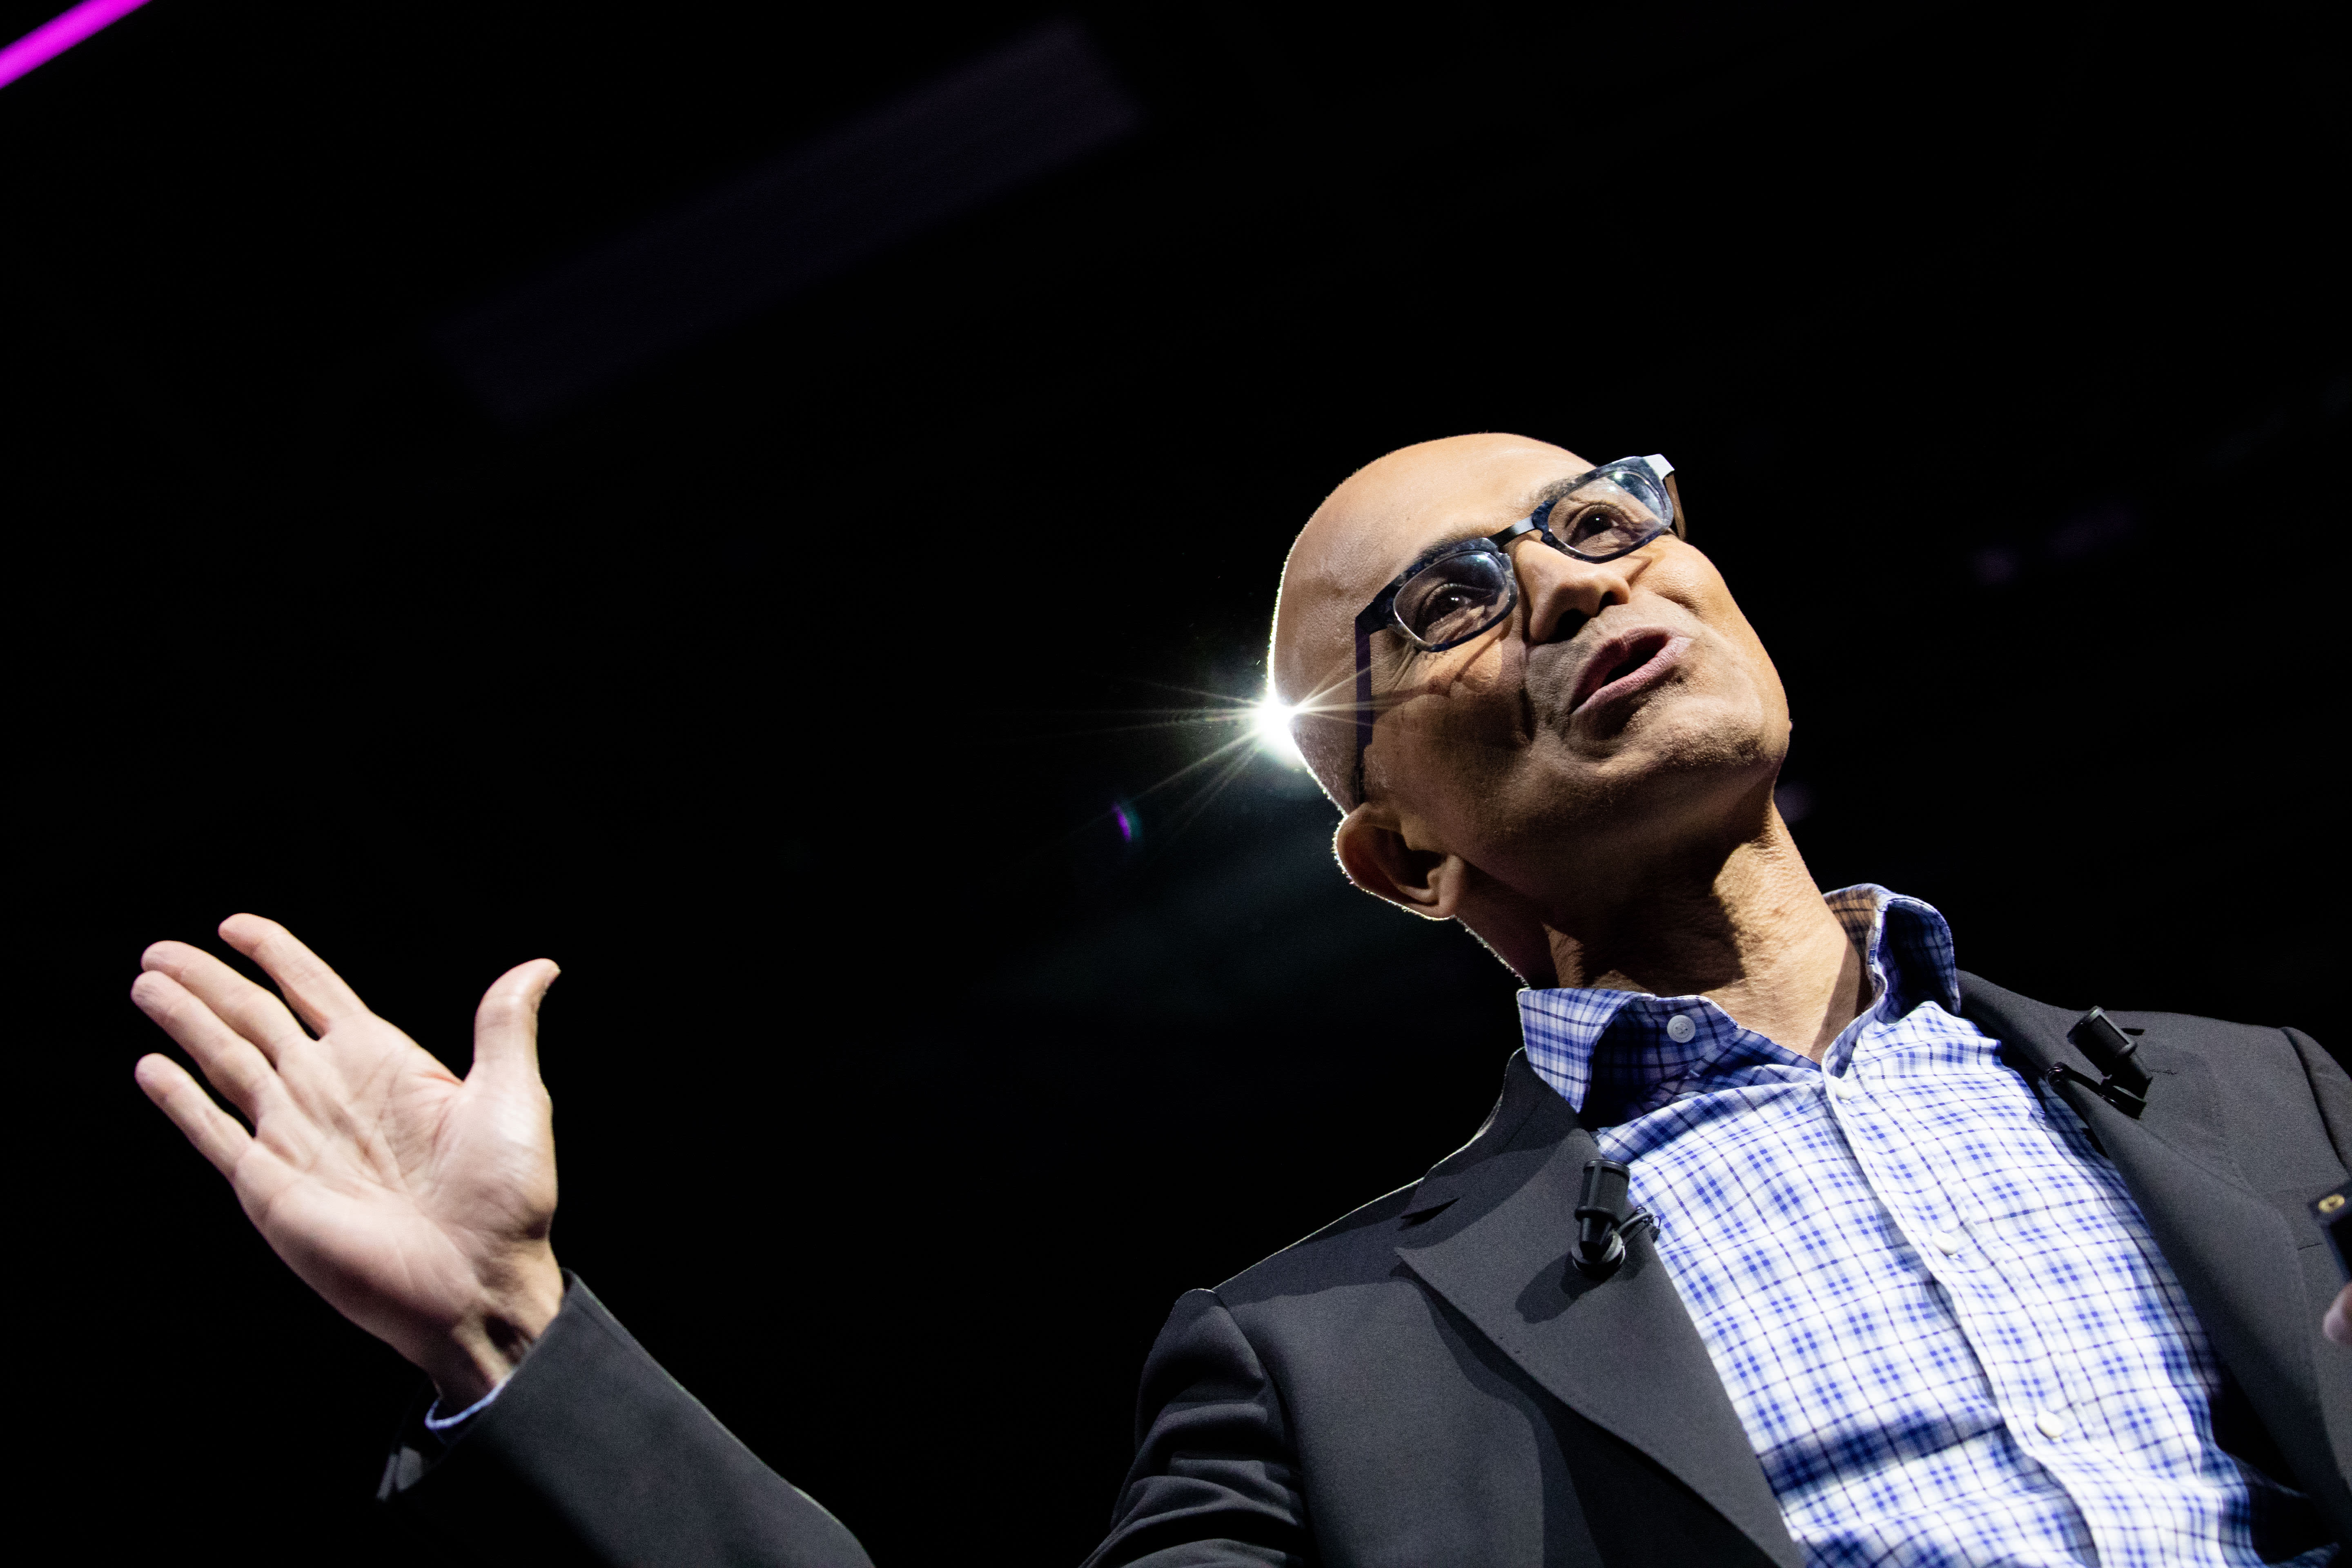 Microsoft is revamping its HR practices after an email chain complaining about discrimination and harassment spread through the company